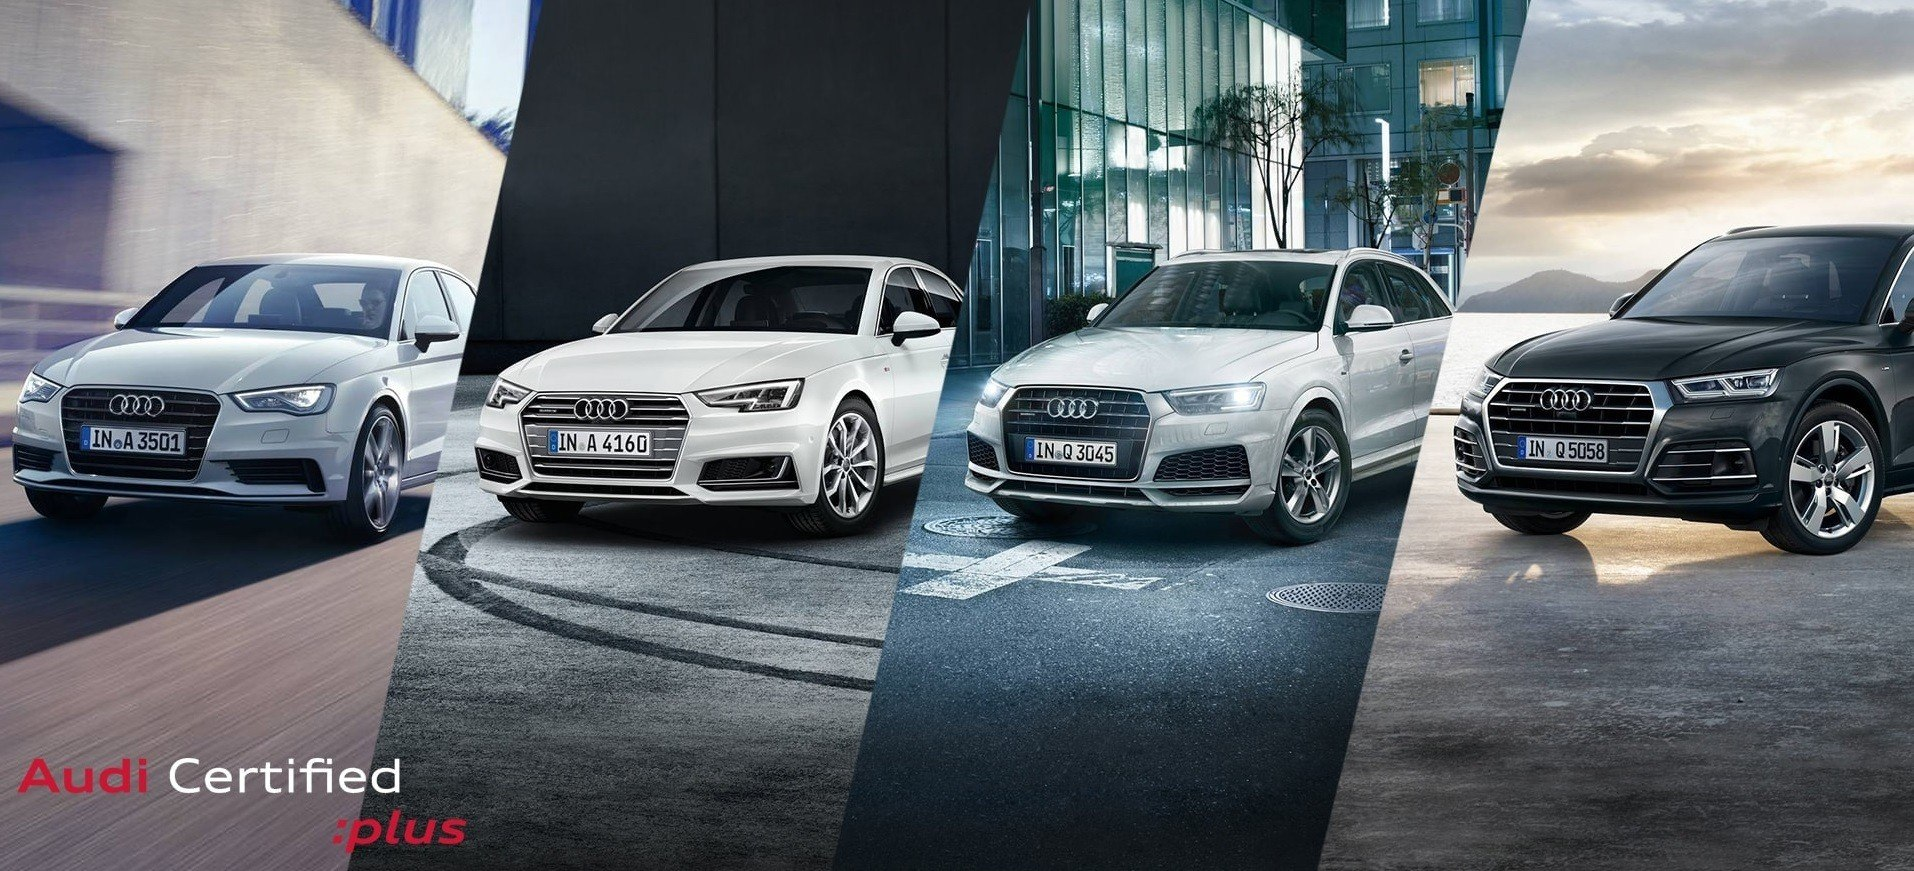 Audi Certified Pre-Owned – The offer is limited. The luxury is not.